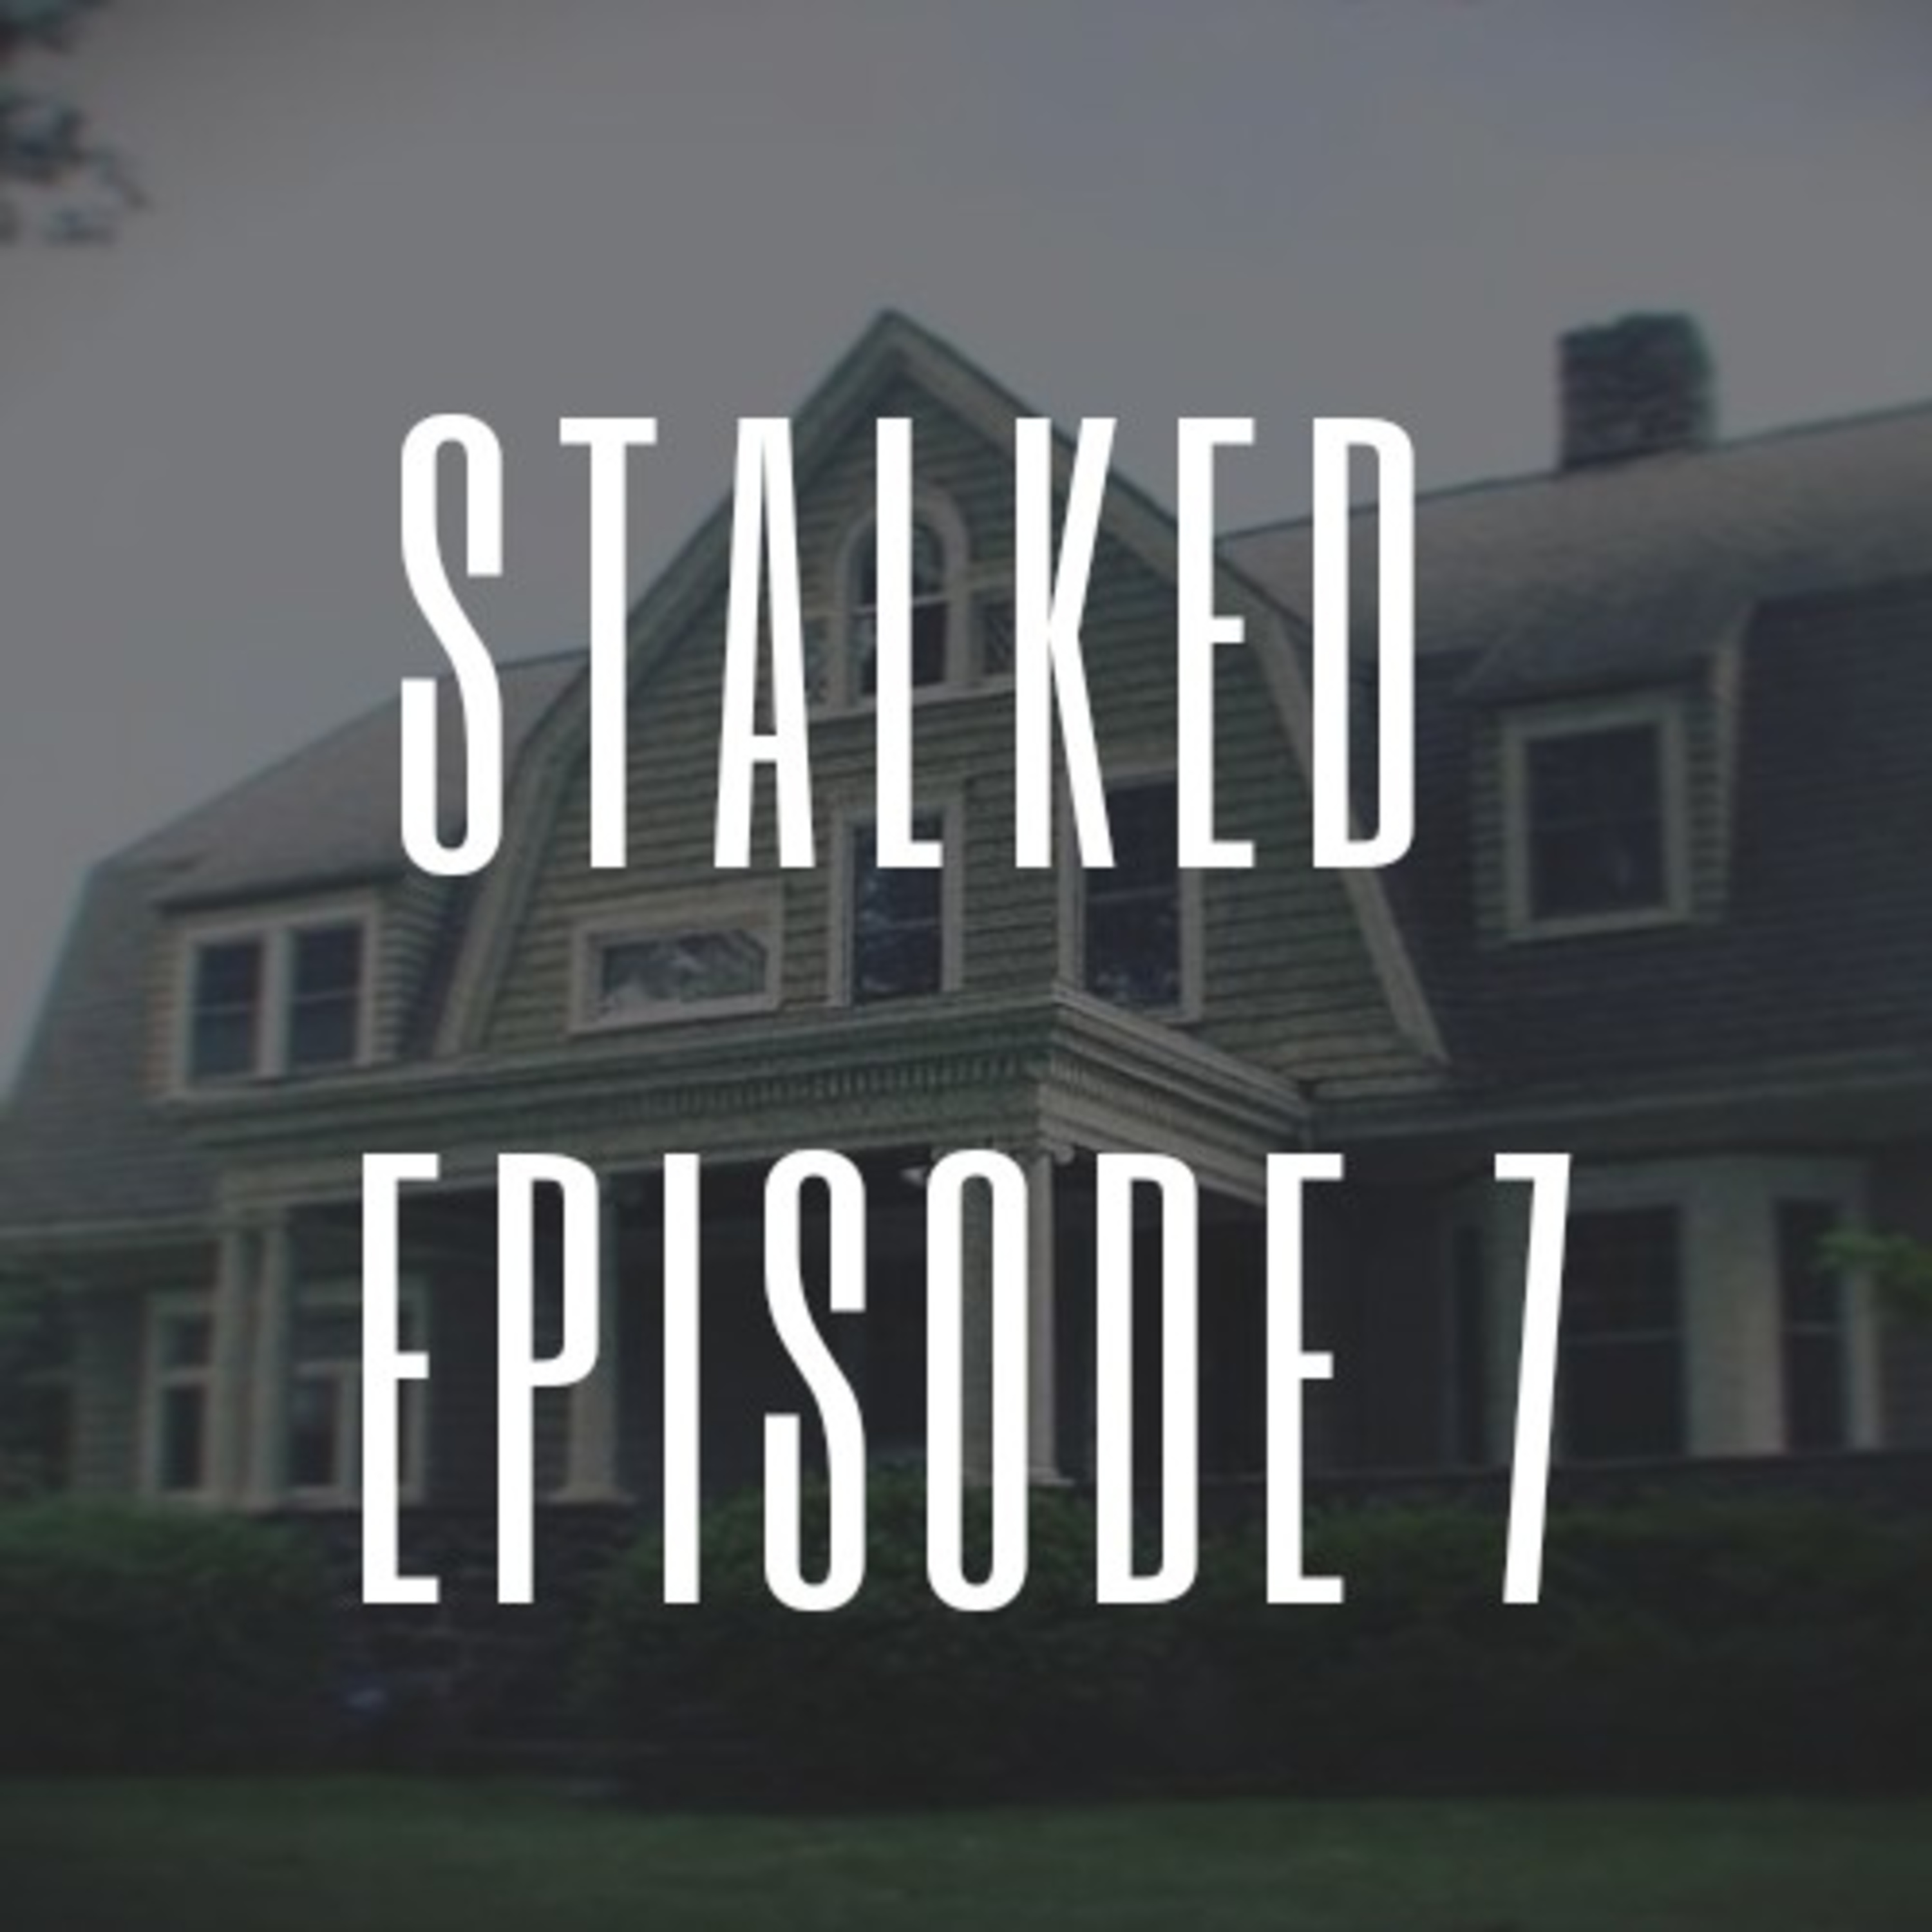 Episode 7 - Profiling The Watcher